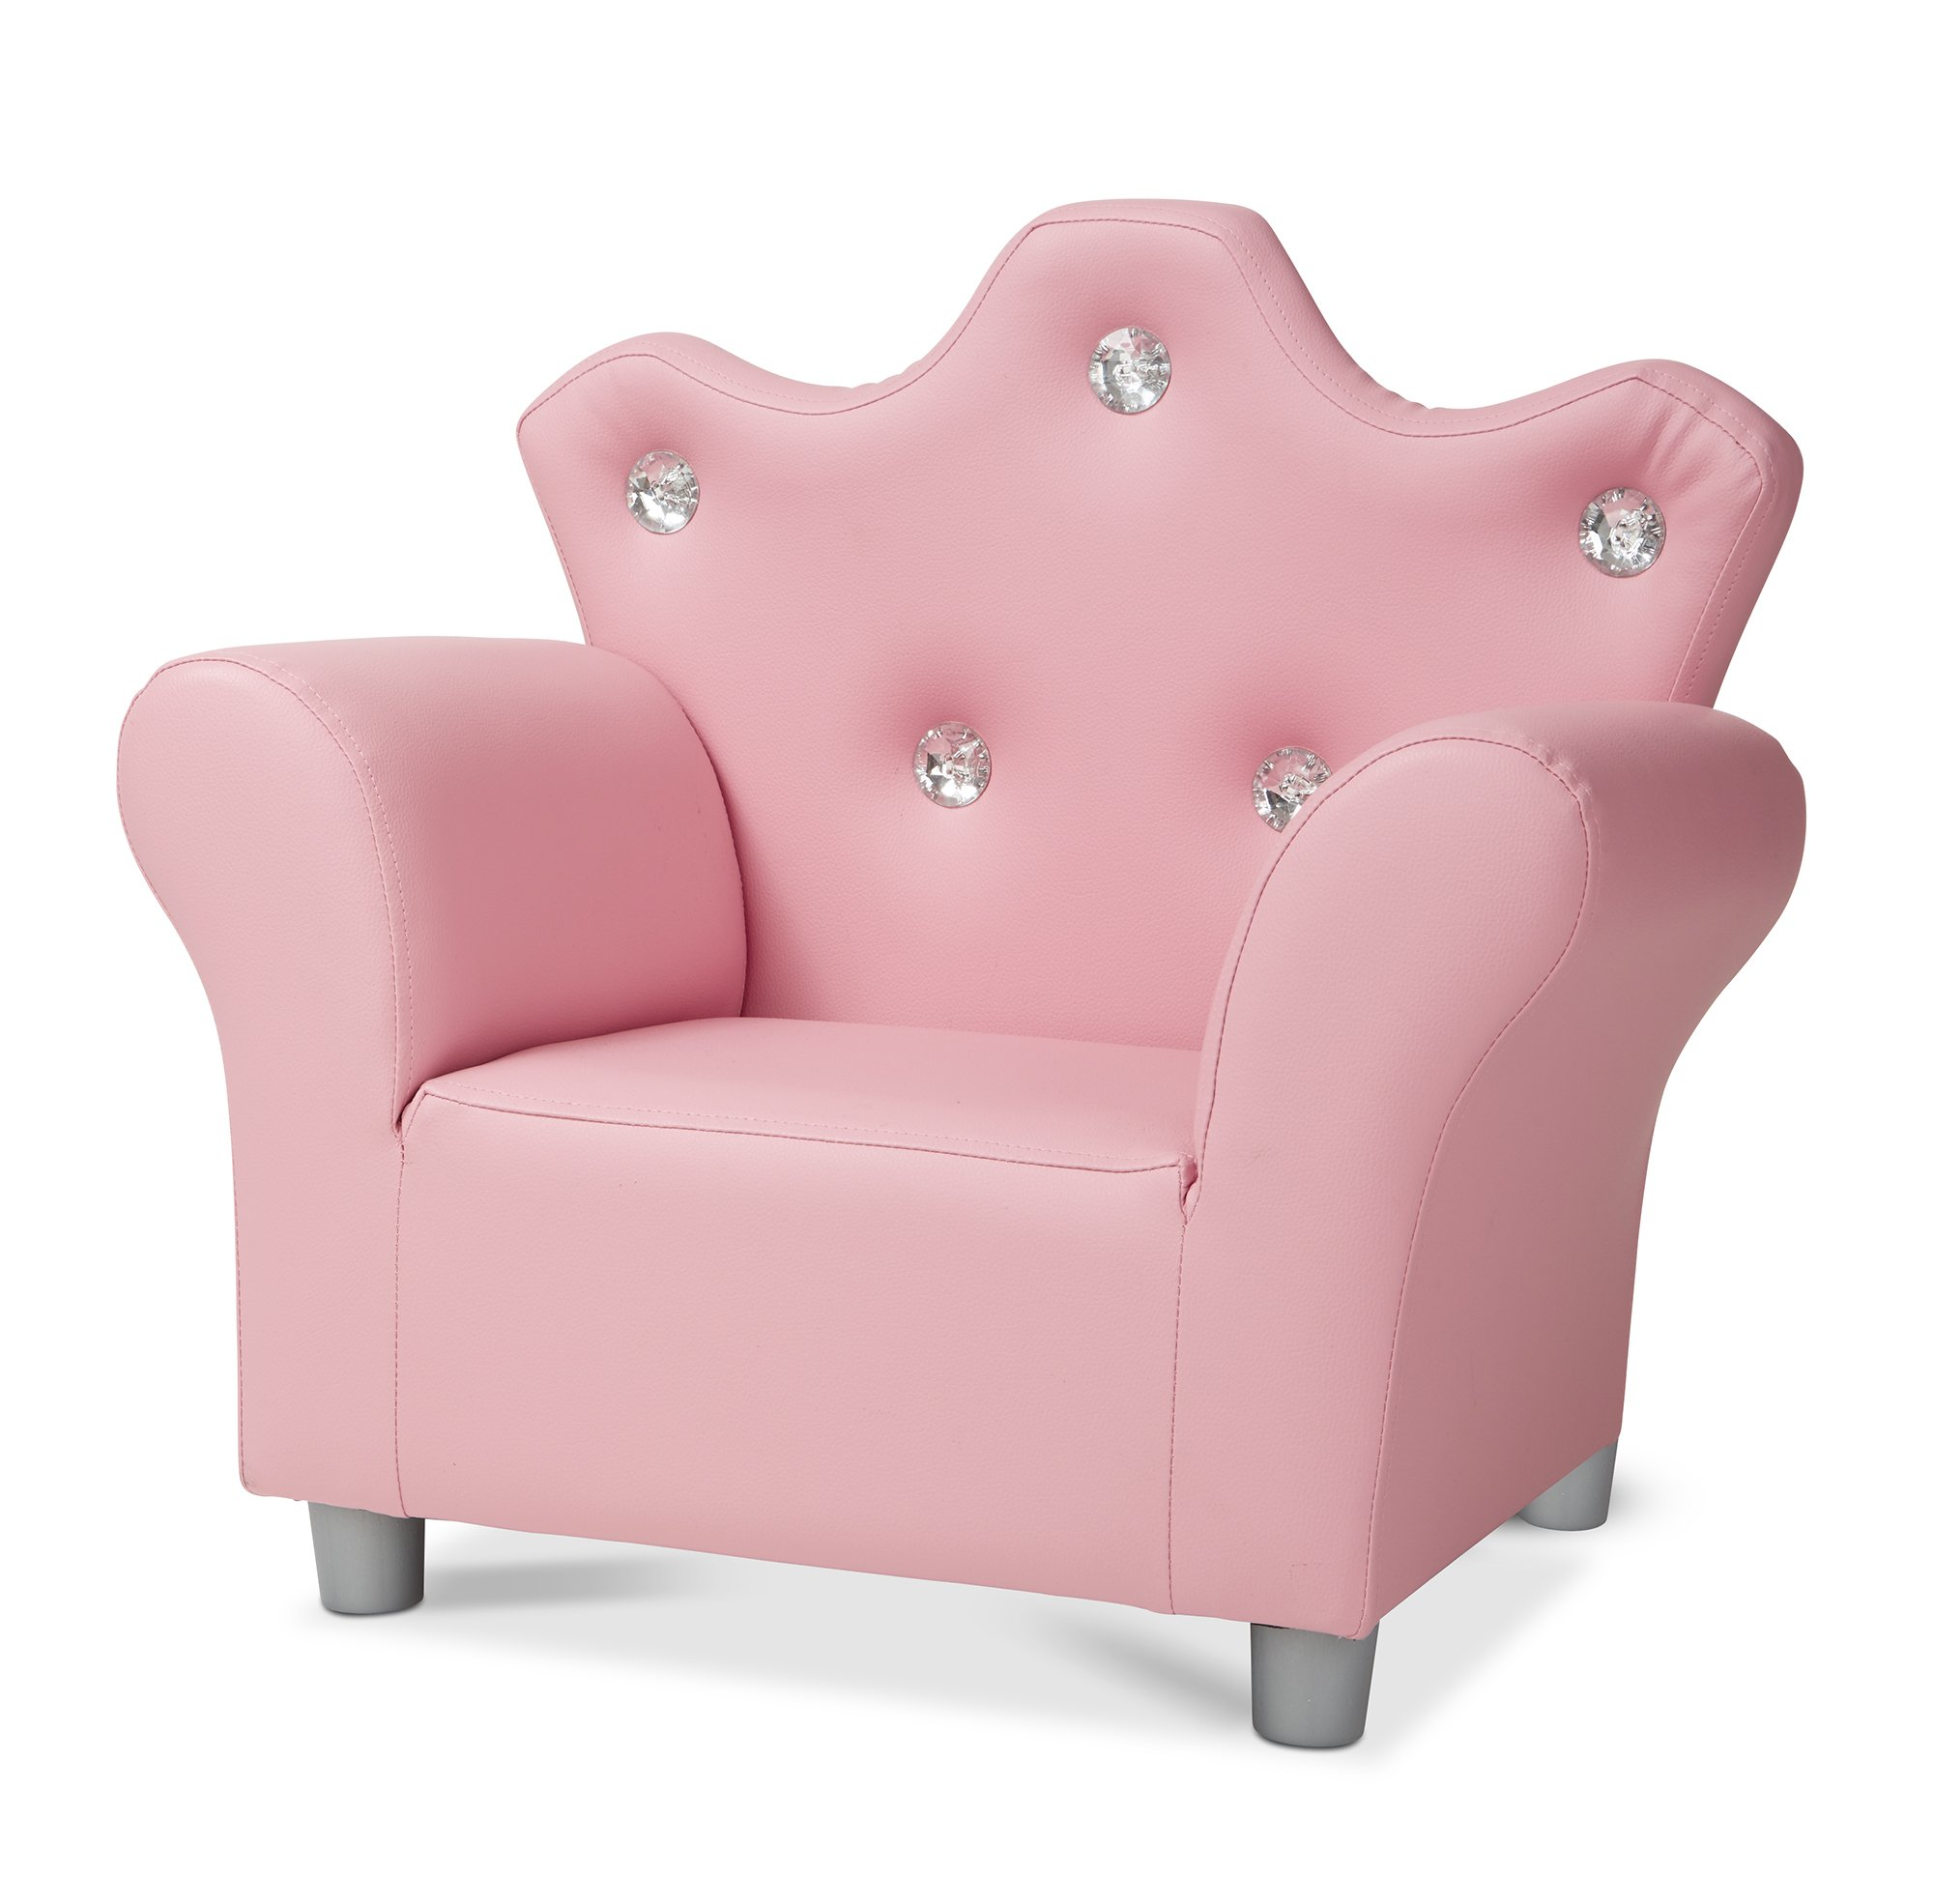 Melissa & Doug Child's Crown Armchair - Pink Faux Leather Children's Furniture - Amazon Exclusive